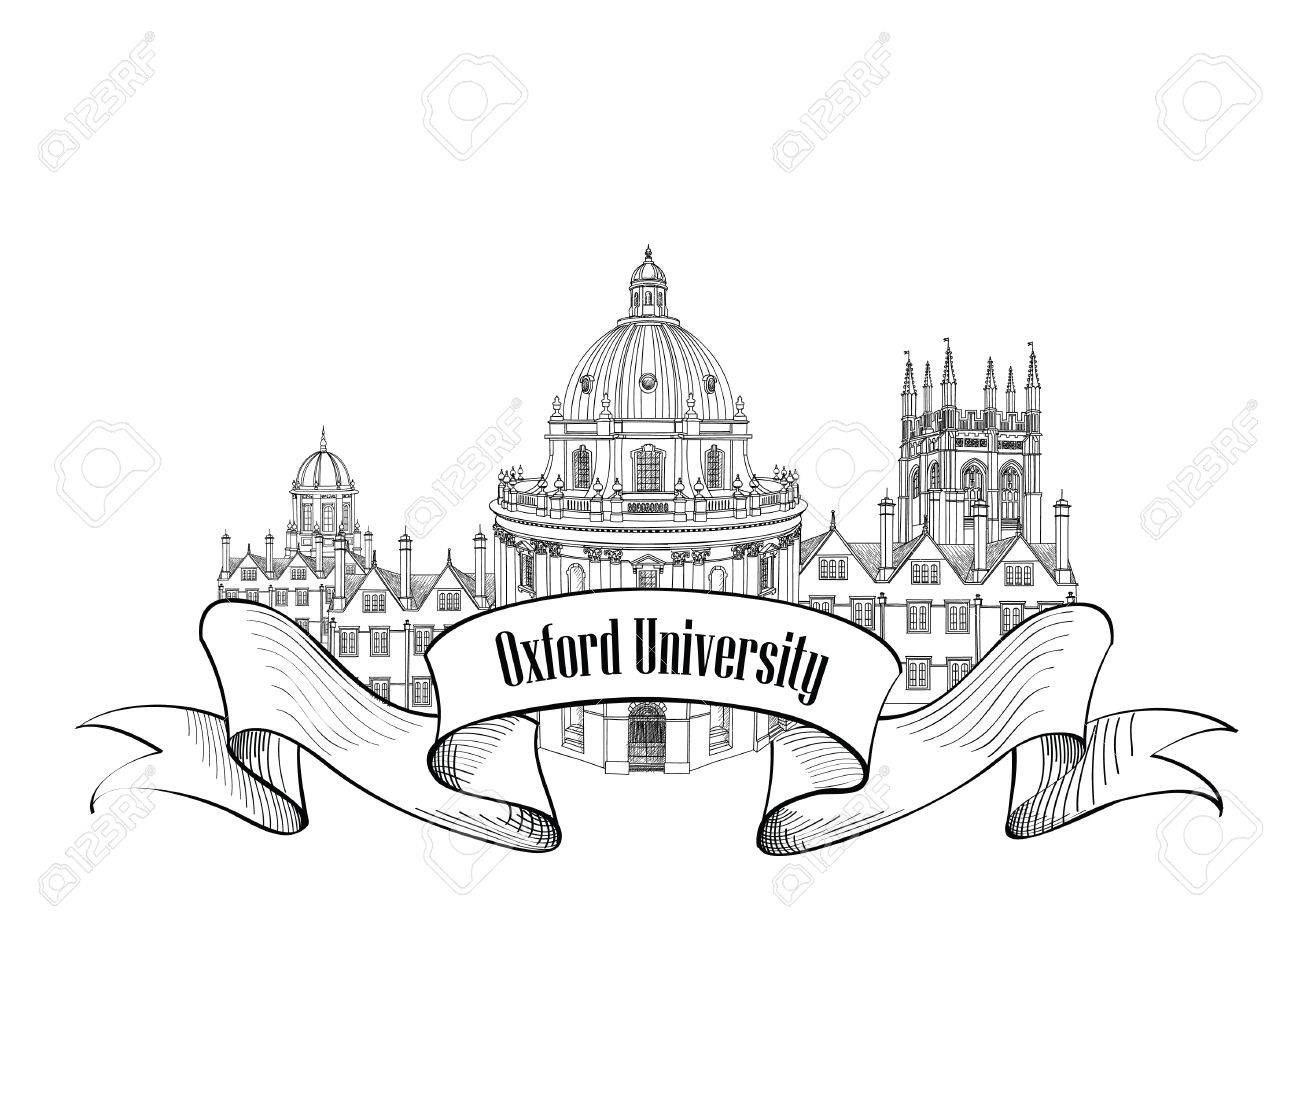 1300x1099 Oxford Univercity Label. Oxford City Skyline Engraved